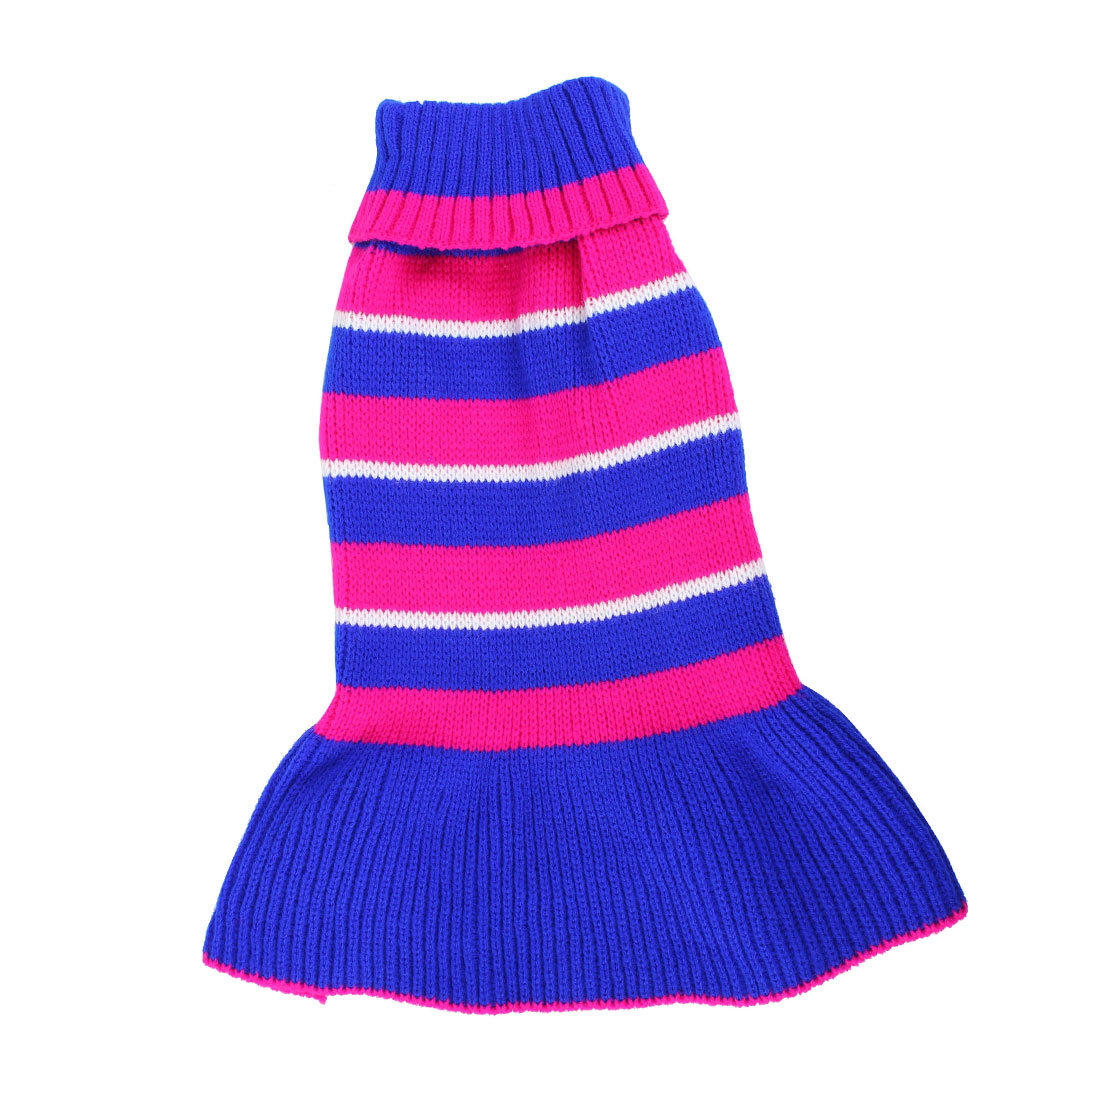 Pet Dog Yorkie Fuchsia Blue Stripe Print Ribbed Cuff Knitwear Turtleneck Dress Apparel Sweater Size S